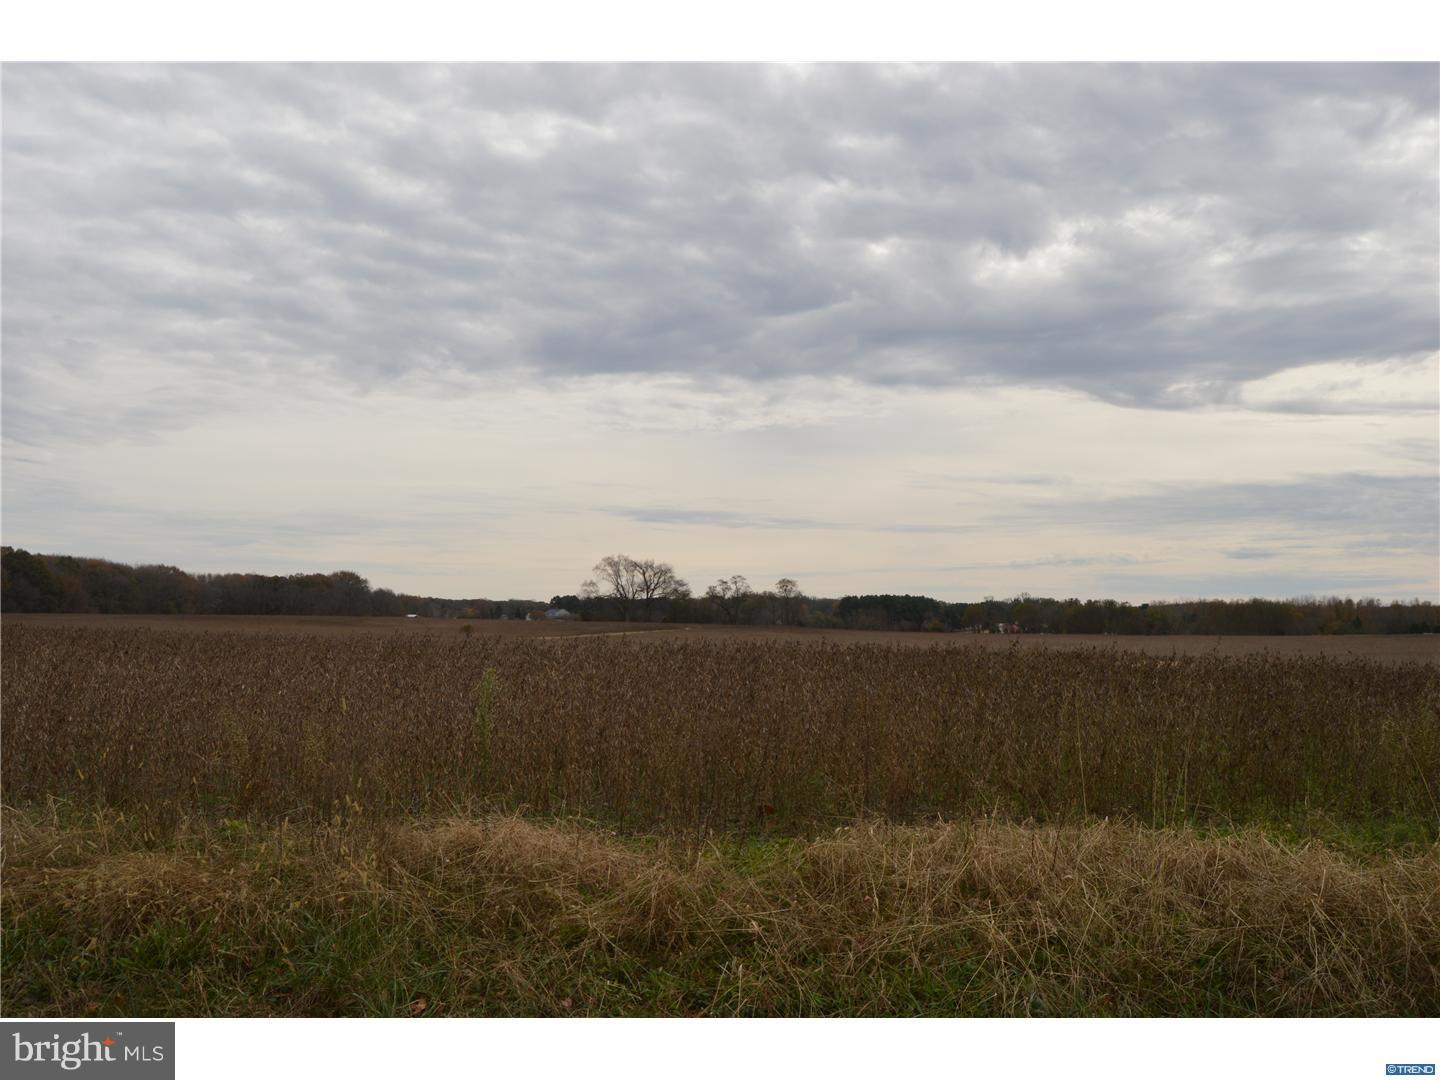 lot 2 HALLTOWN ROAD, MARYDEL, DE 19964